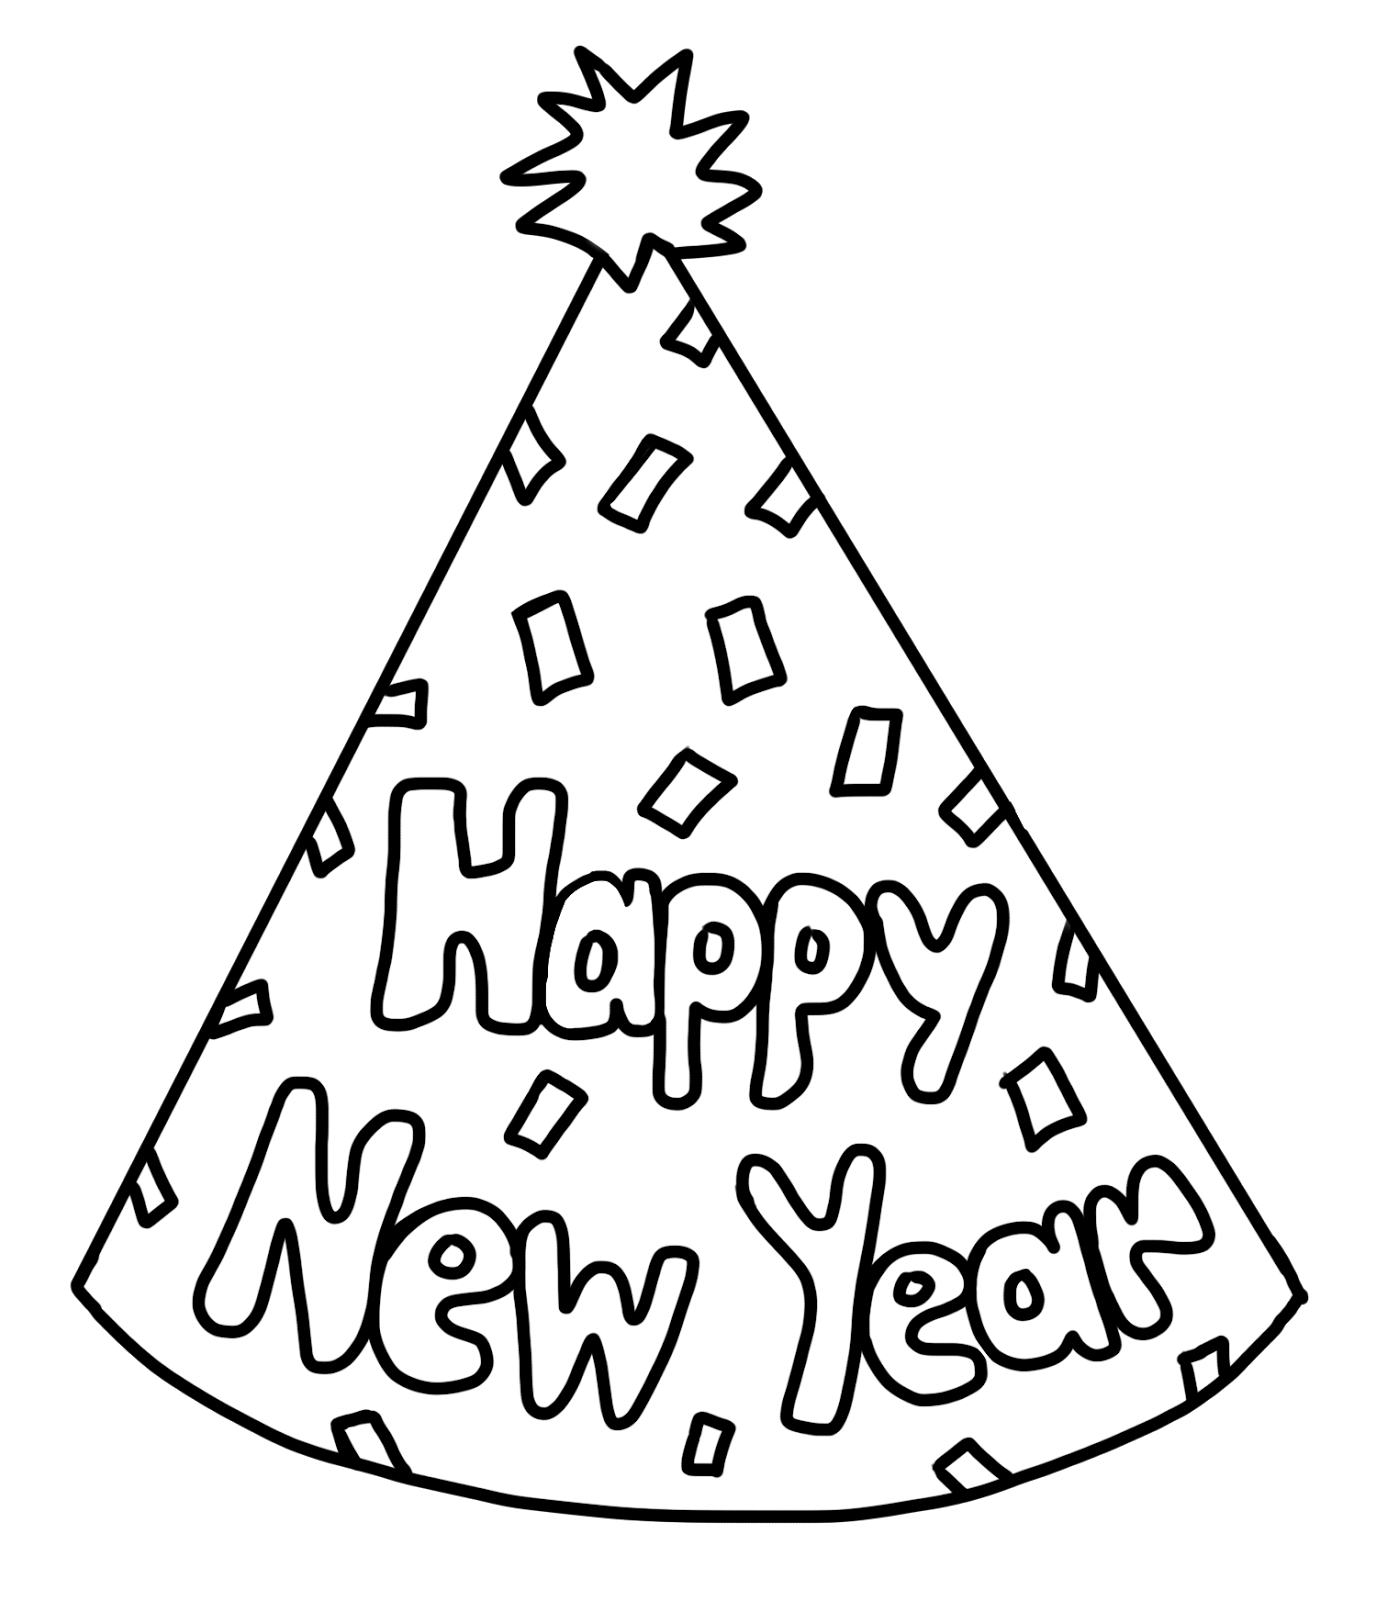 Clip Art New Year's Eve Party Clipart - Clipart Kid